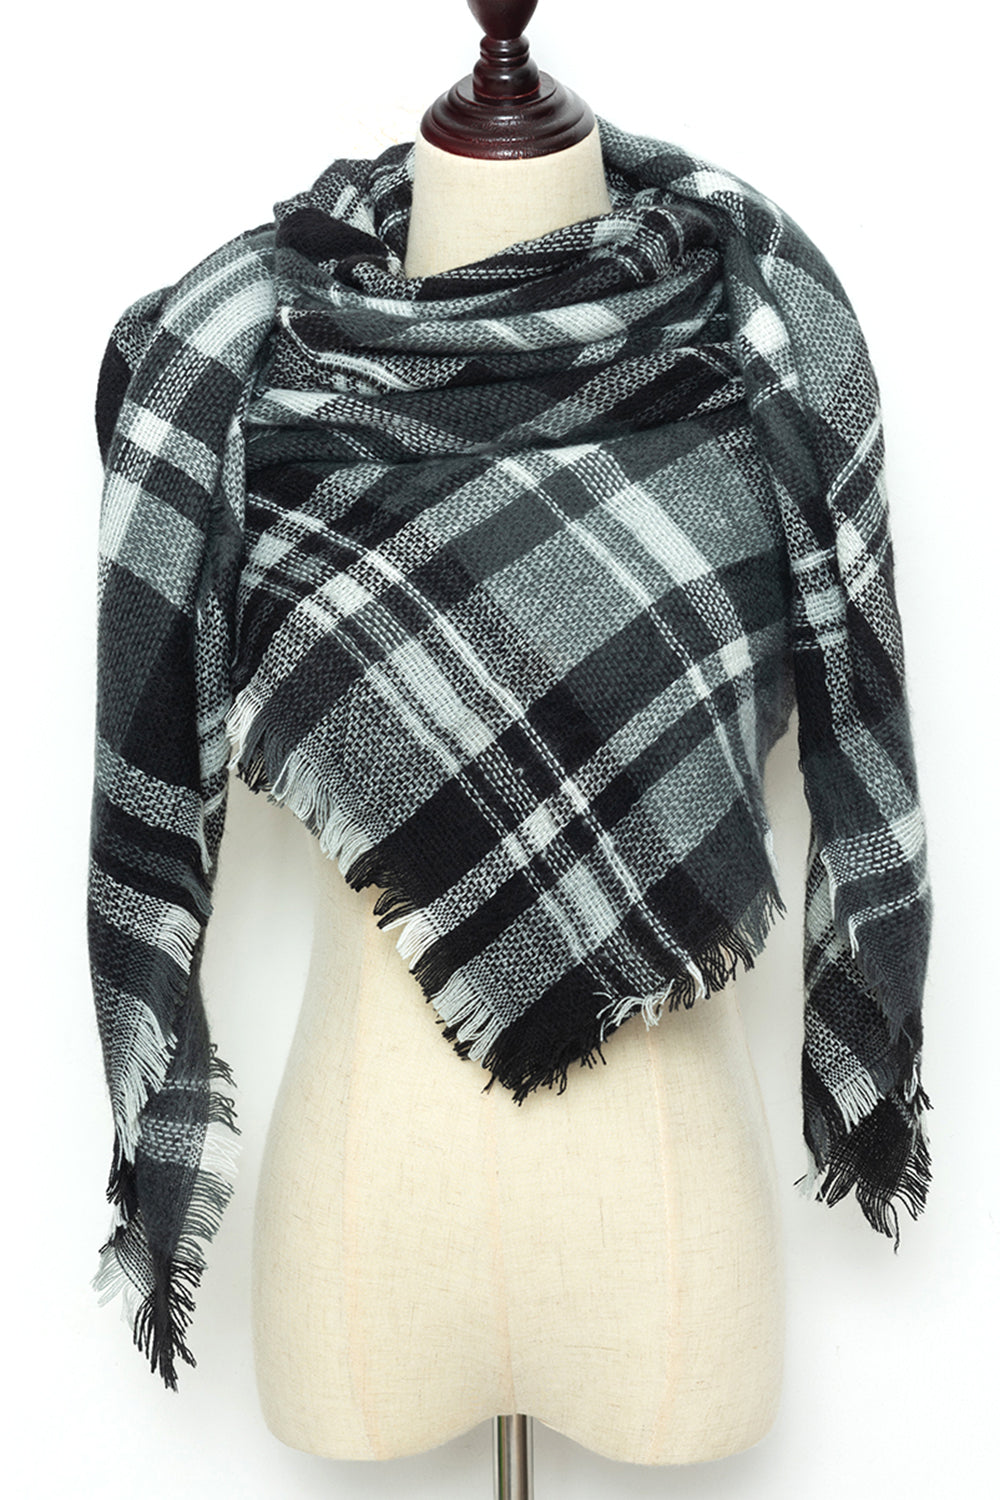 Black and White Plaid Blanket Scarf by Just Cozy.